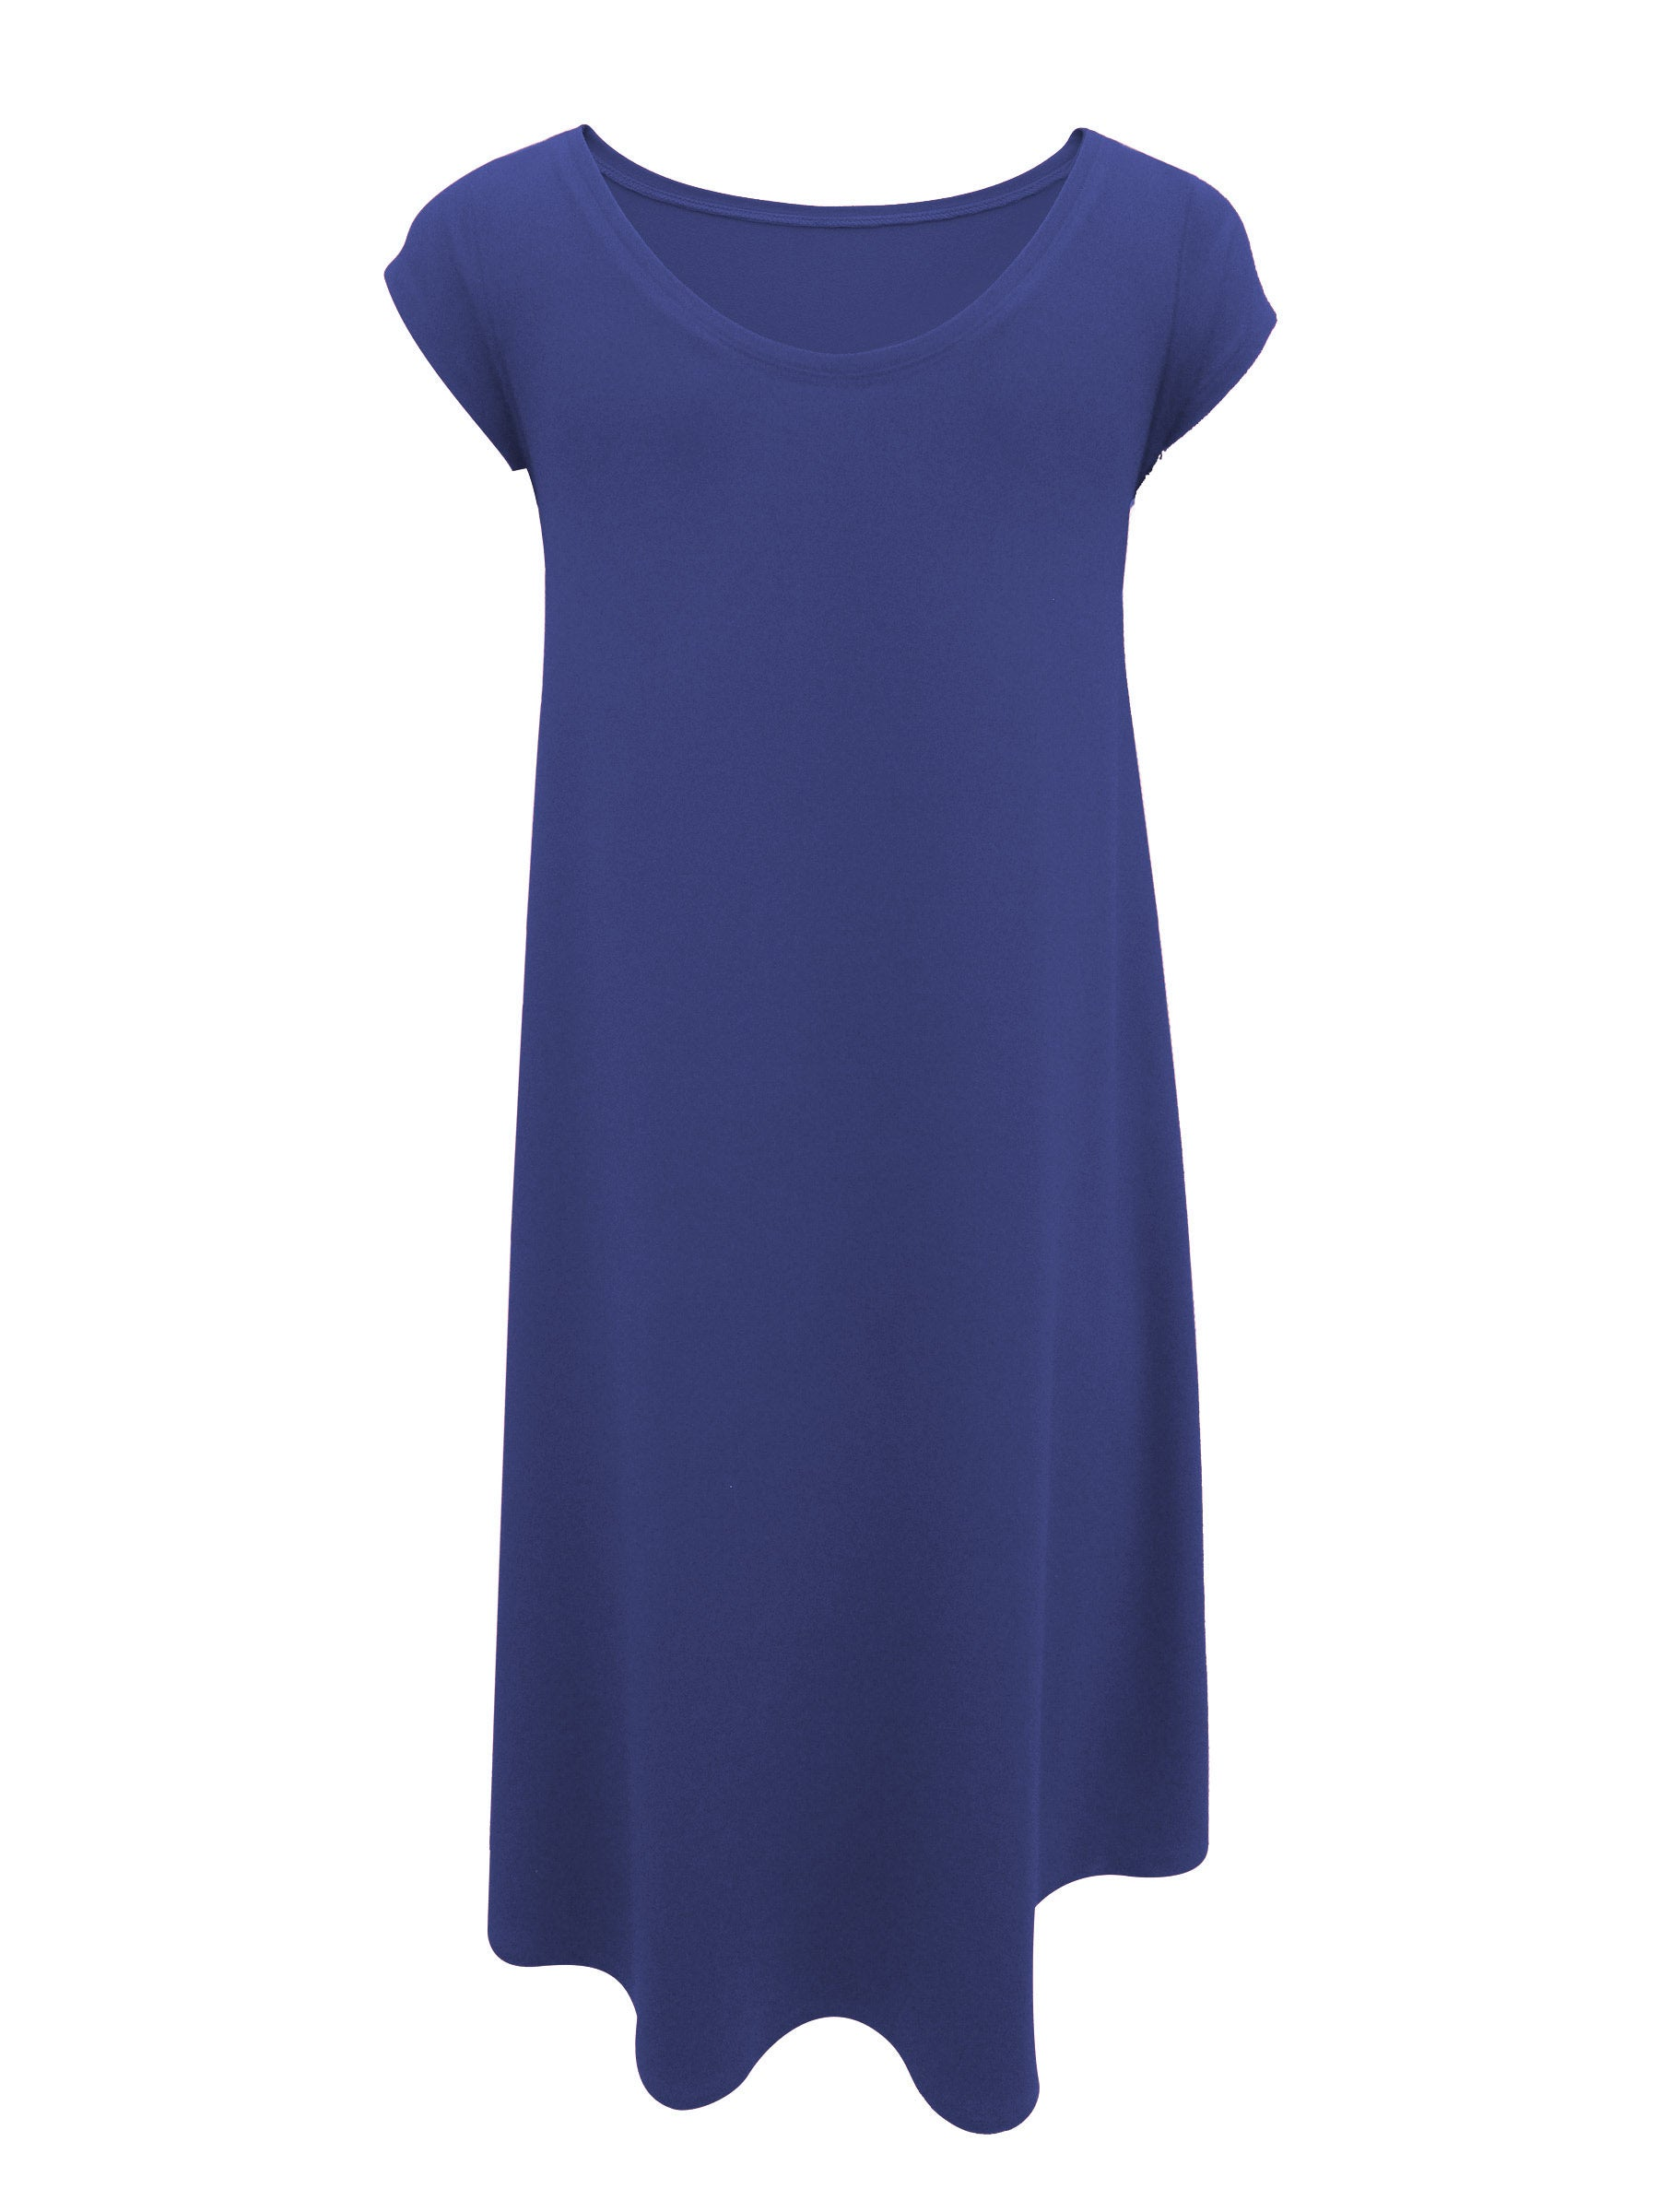 Hyda Dress by Moovment, Blueberry, back view, short sleeves, round neck, scooped neck at back, high-low hemline, bamboo, sizes XS to XXL, made in Quebec